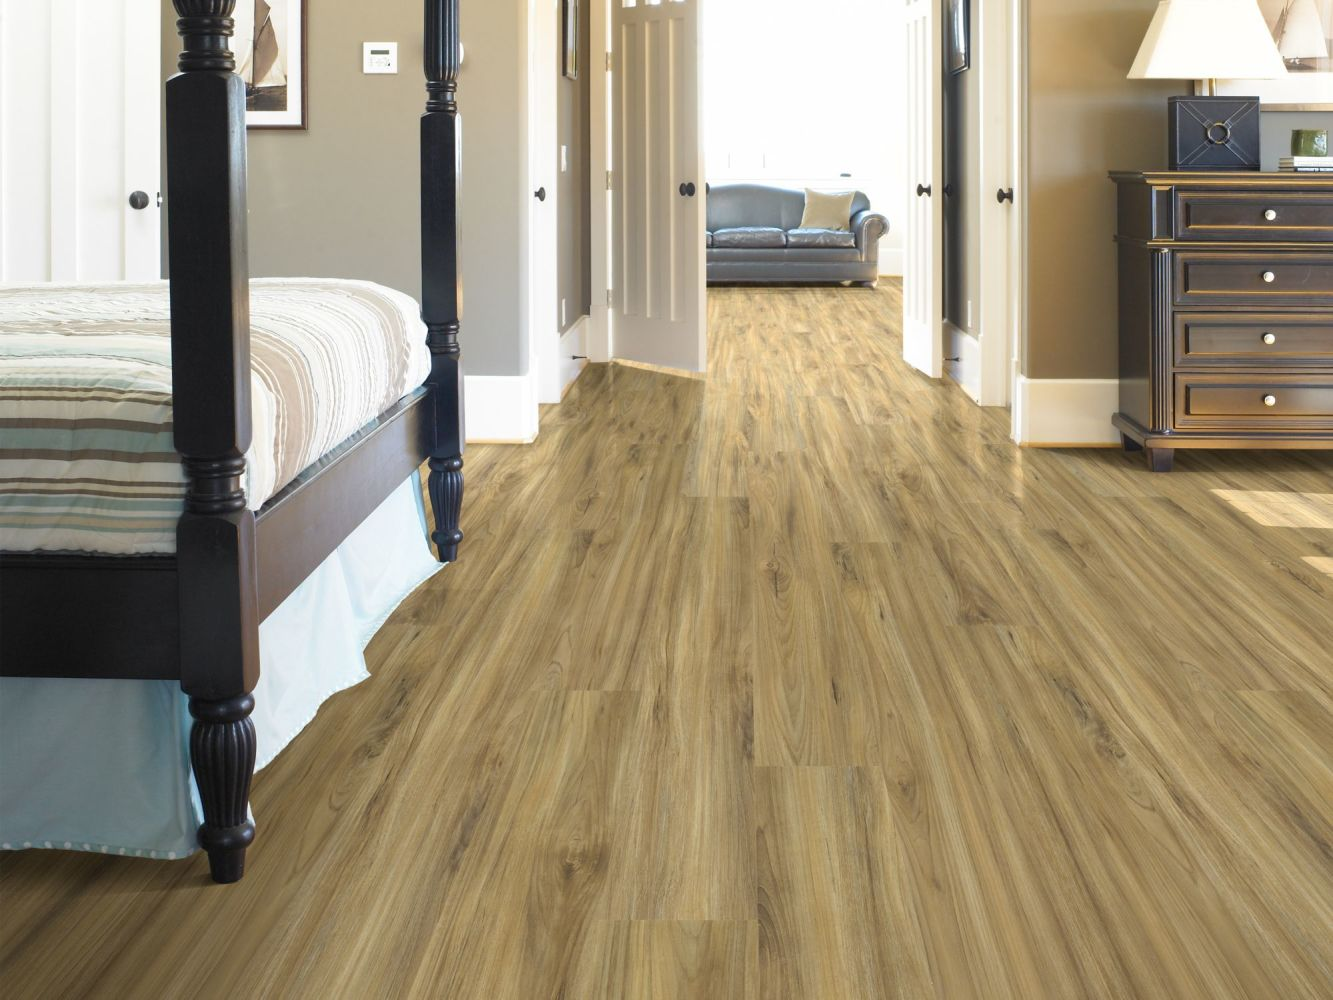 Shaw Floors Resilient Property Solutions Foundation Plank Whispering Wood 00405_VE180